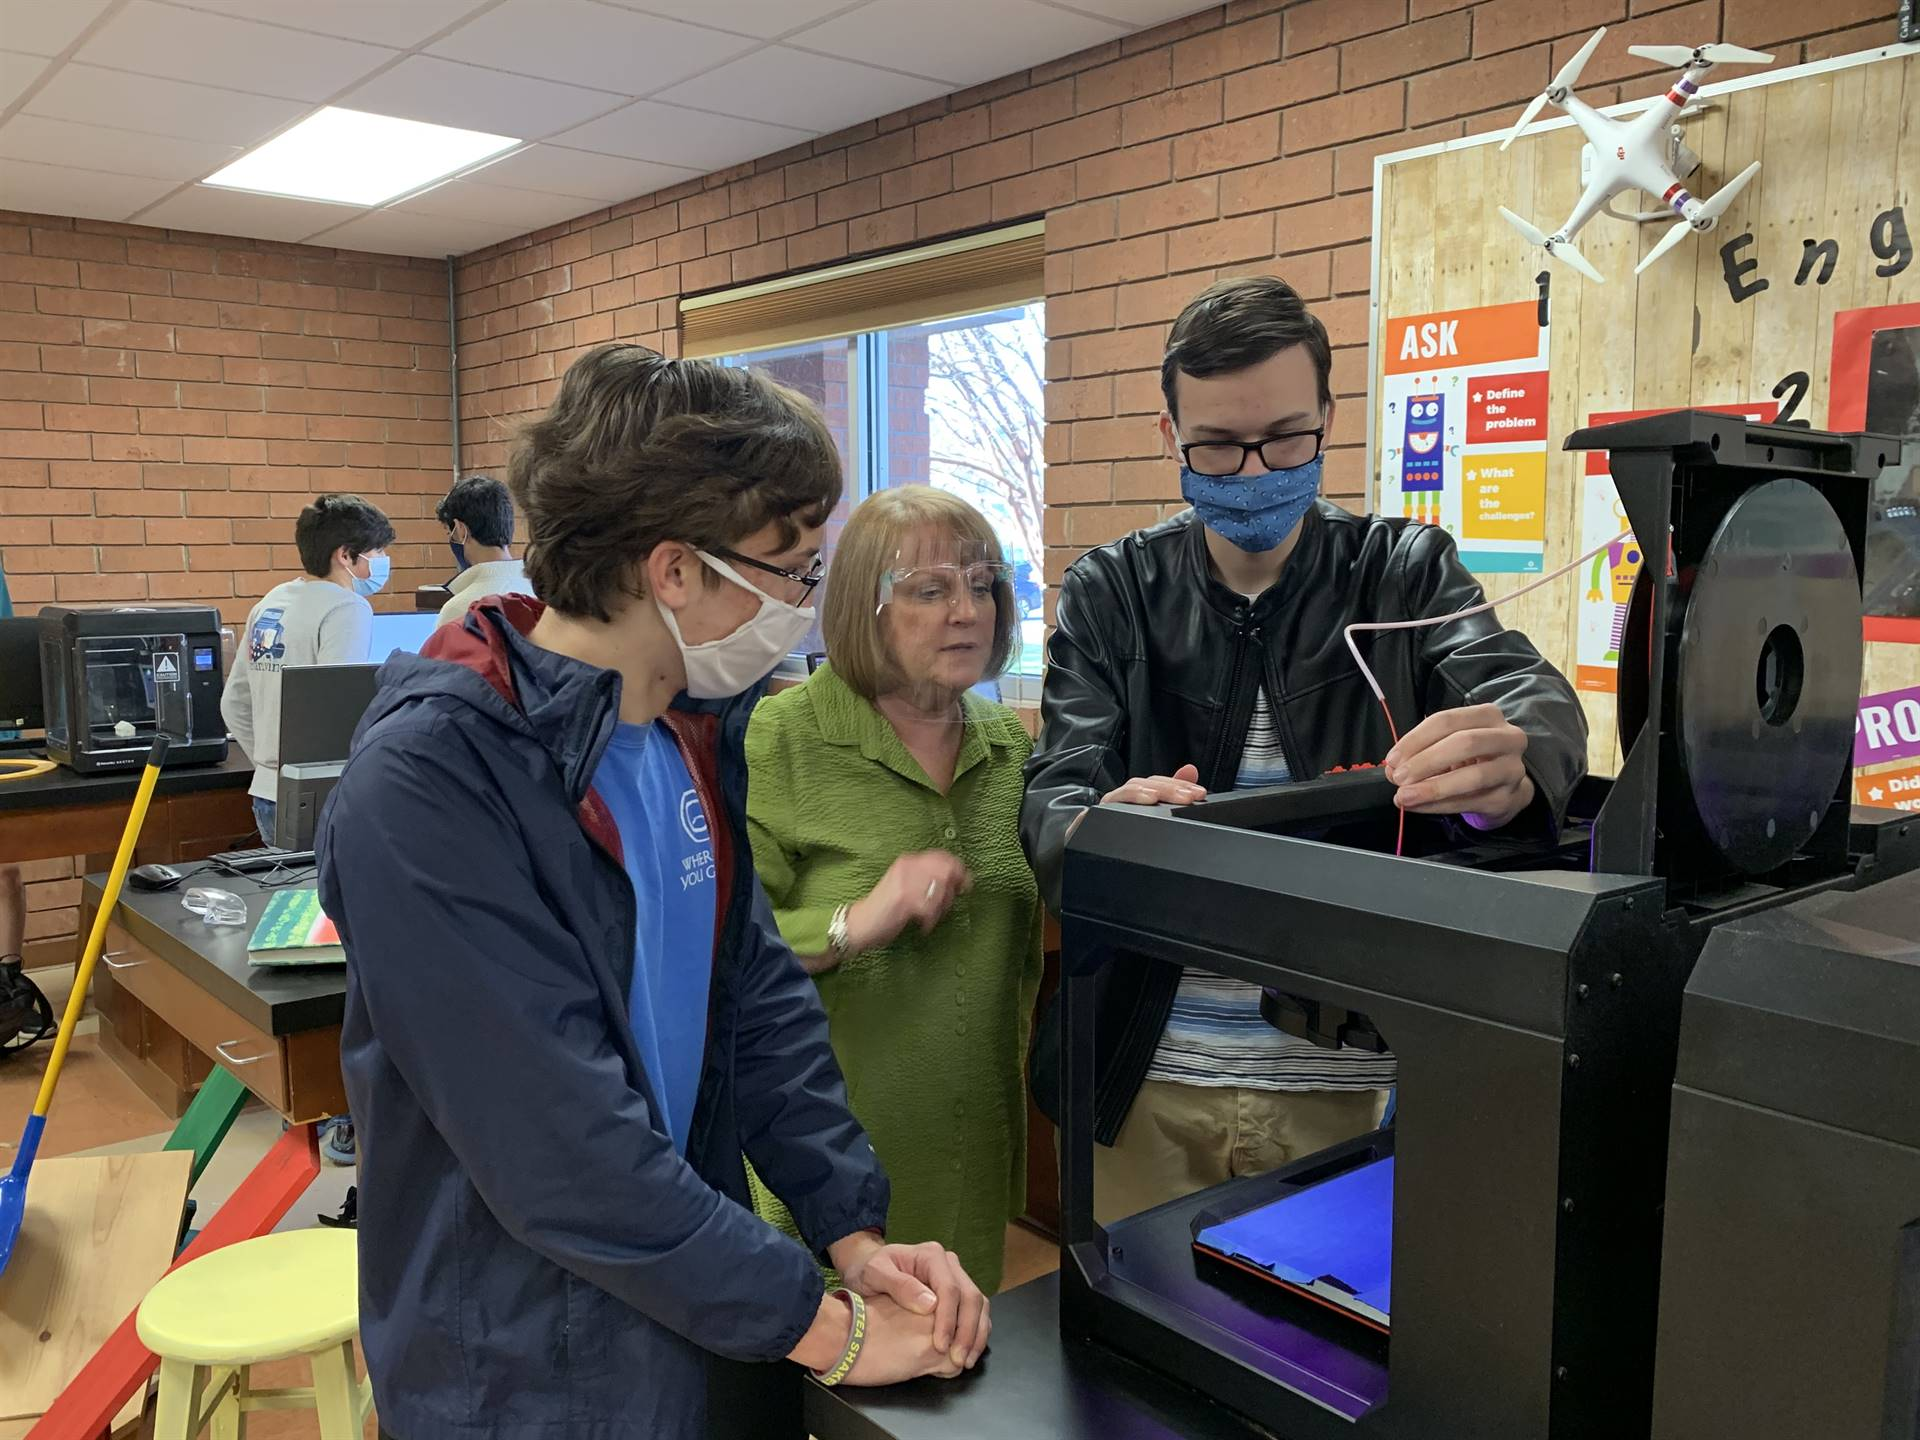 Students and teacher loading 3D printer